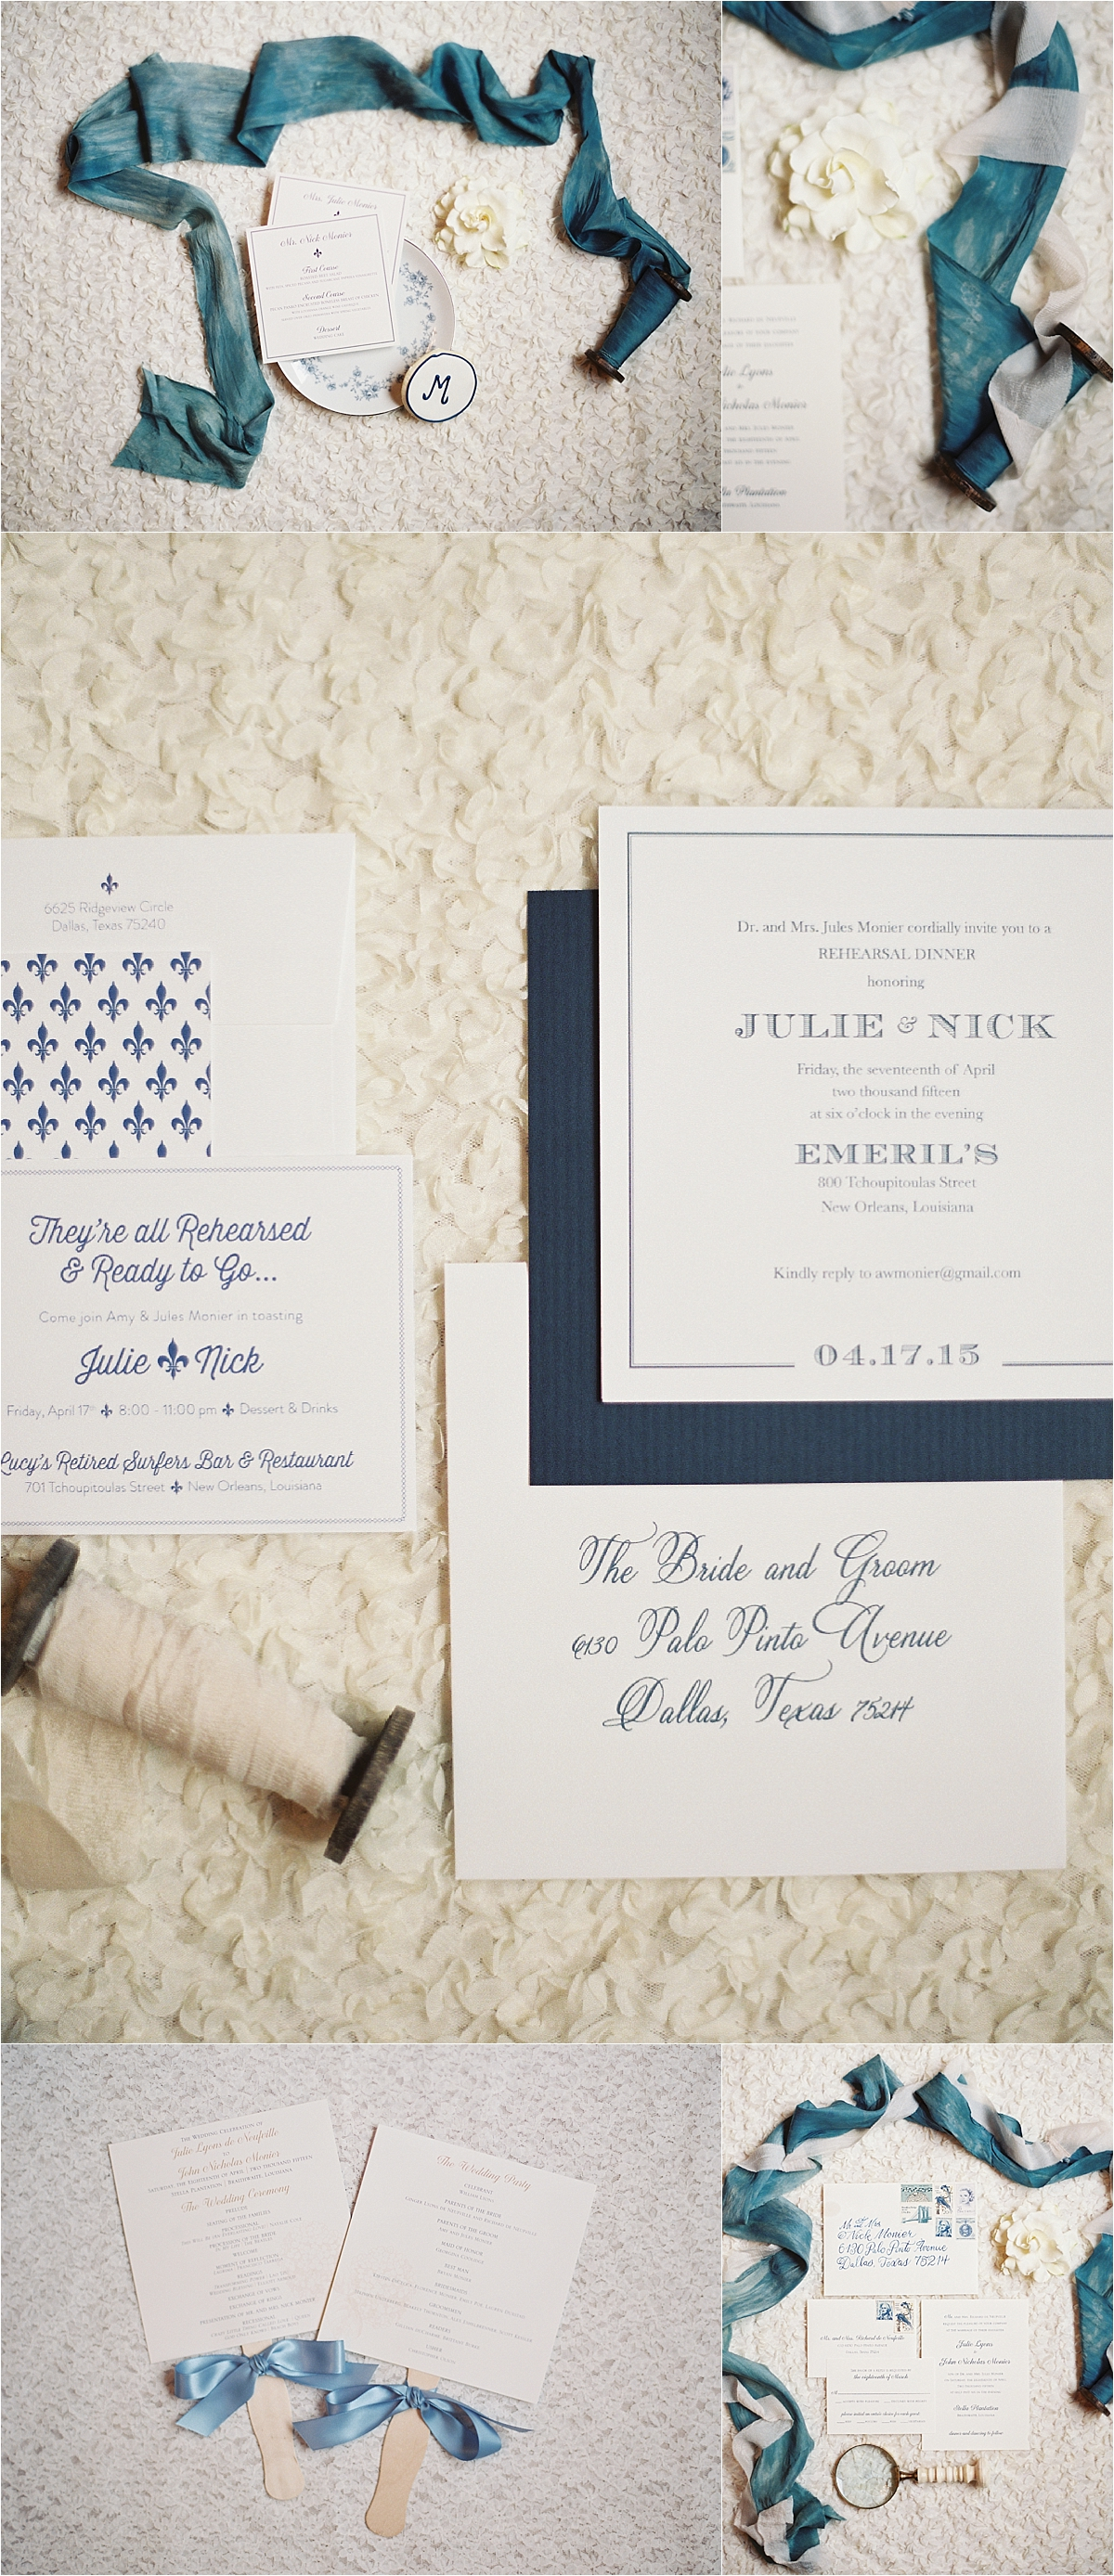 ivory and dark teal invitations with delicate blue ribbon